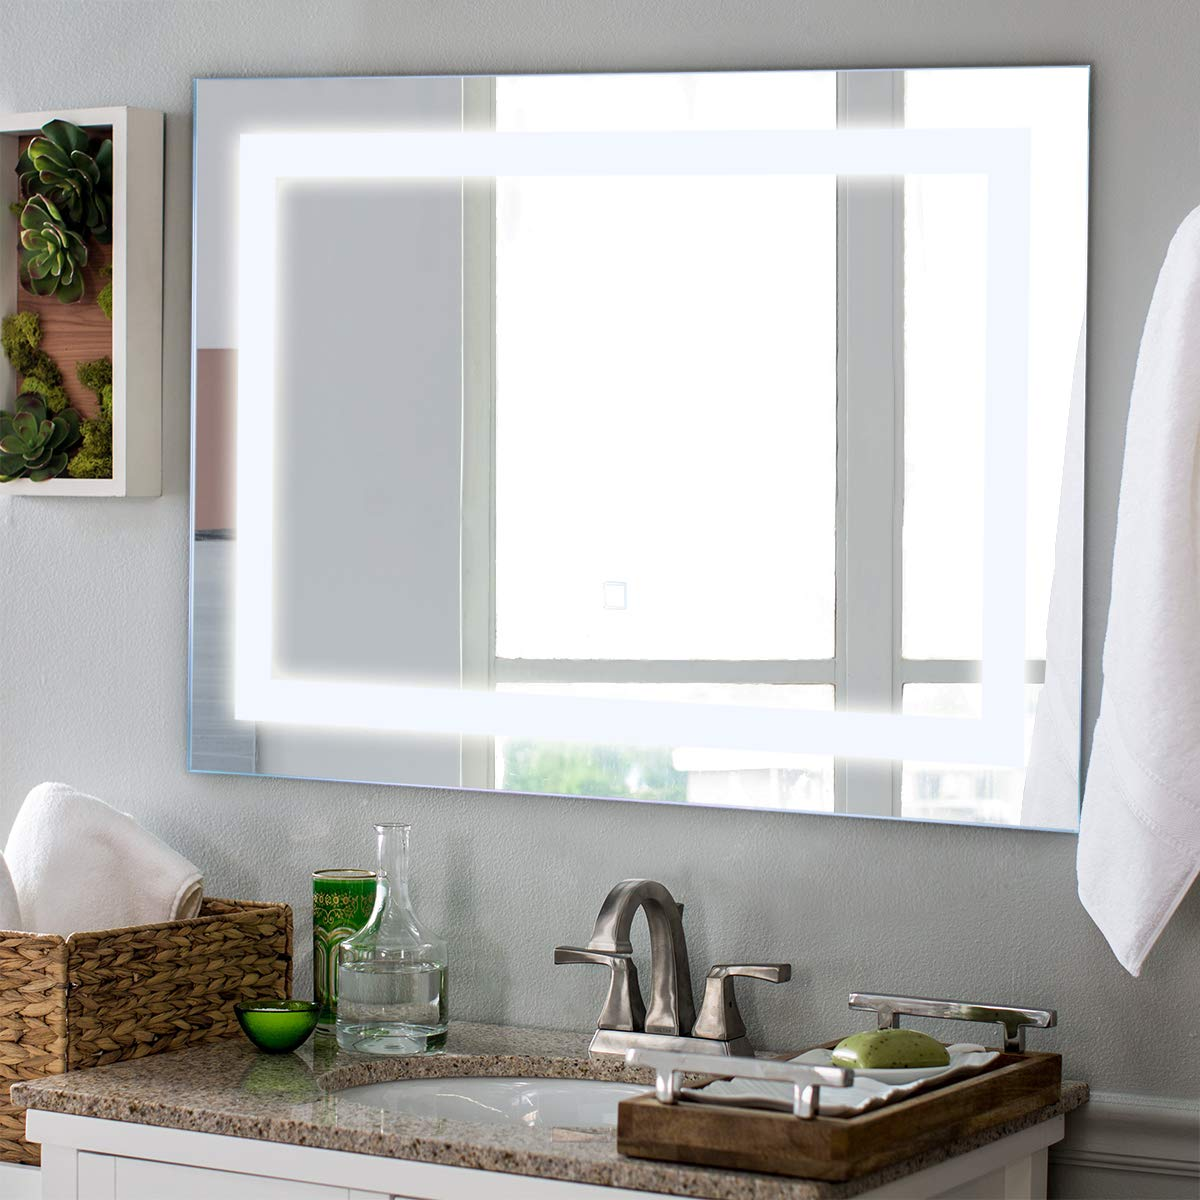 Tangkula Led Bathroom Mirror Wall Mounted Makeup Vanity Mirror With Led Light Illuminated Lightning Bath Hanging Frosted Polished Edge Rectangle Mirror 27 5 X 20 Buy Online In Antigua And Barbuda At Desertcart 71158738